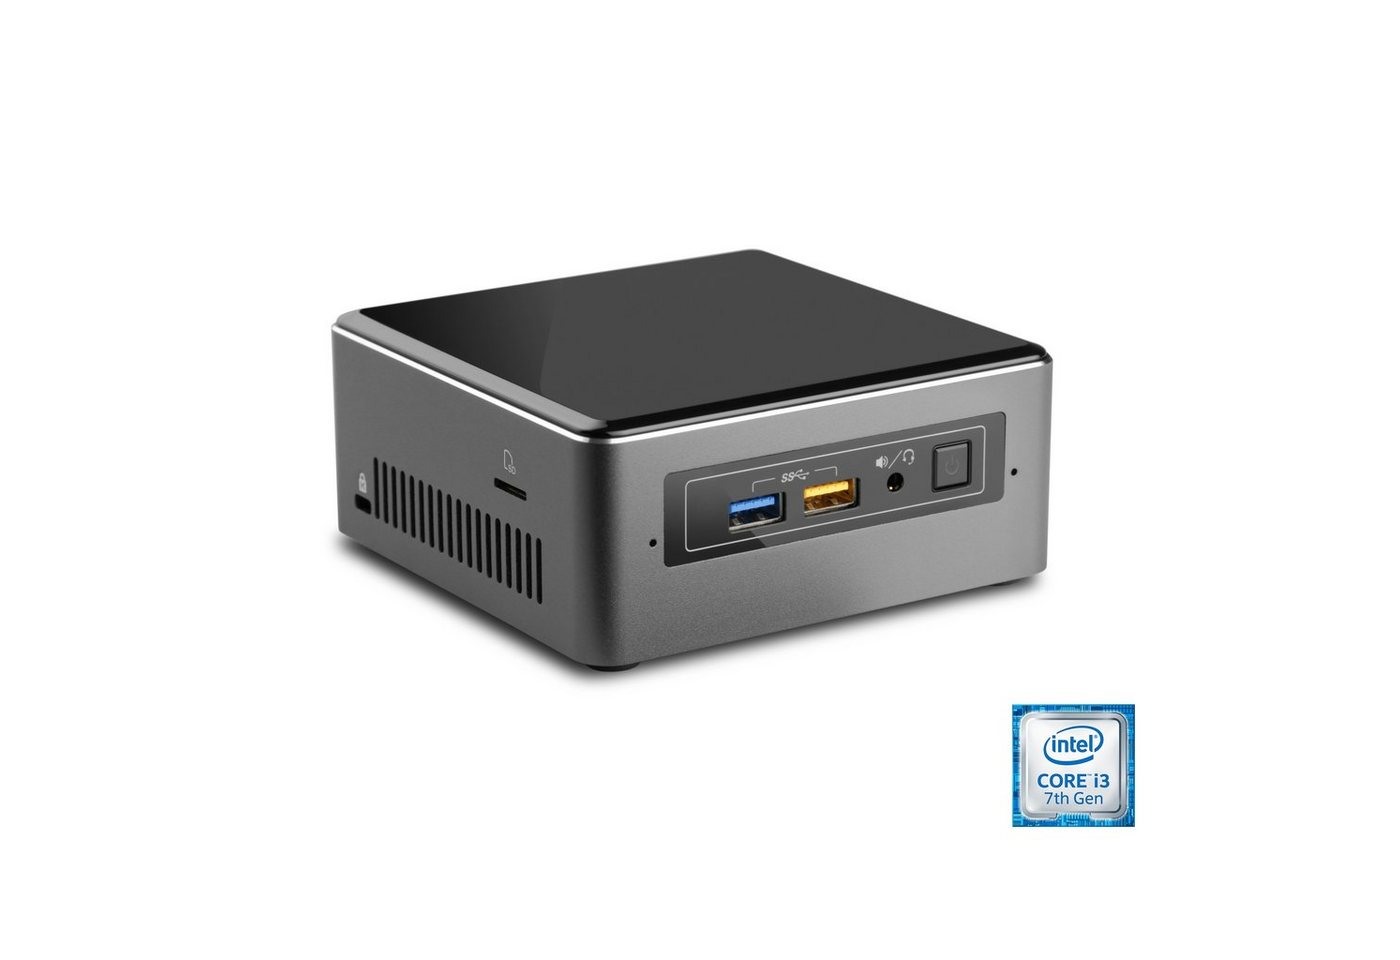 csl-mini-pc-core-i3-7100u-intel-hd-620-8gb-ram-250gb-ssd-intel-nuc